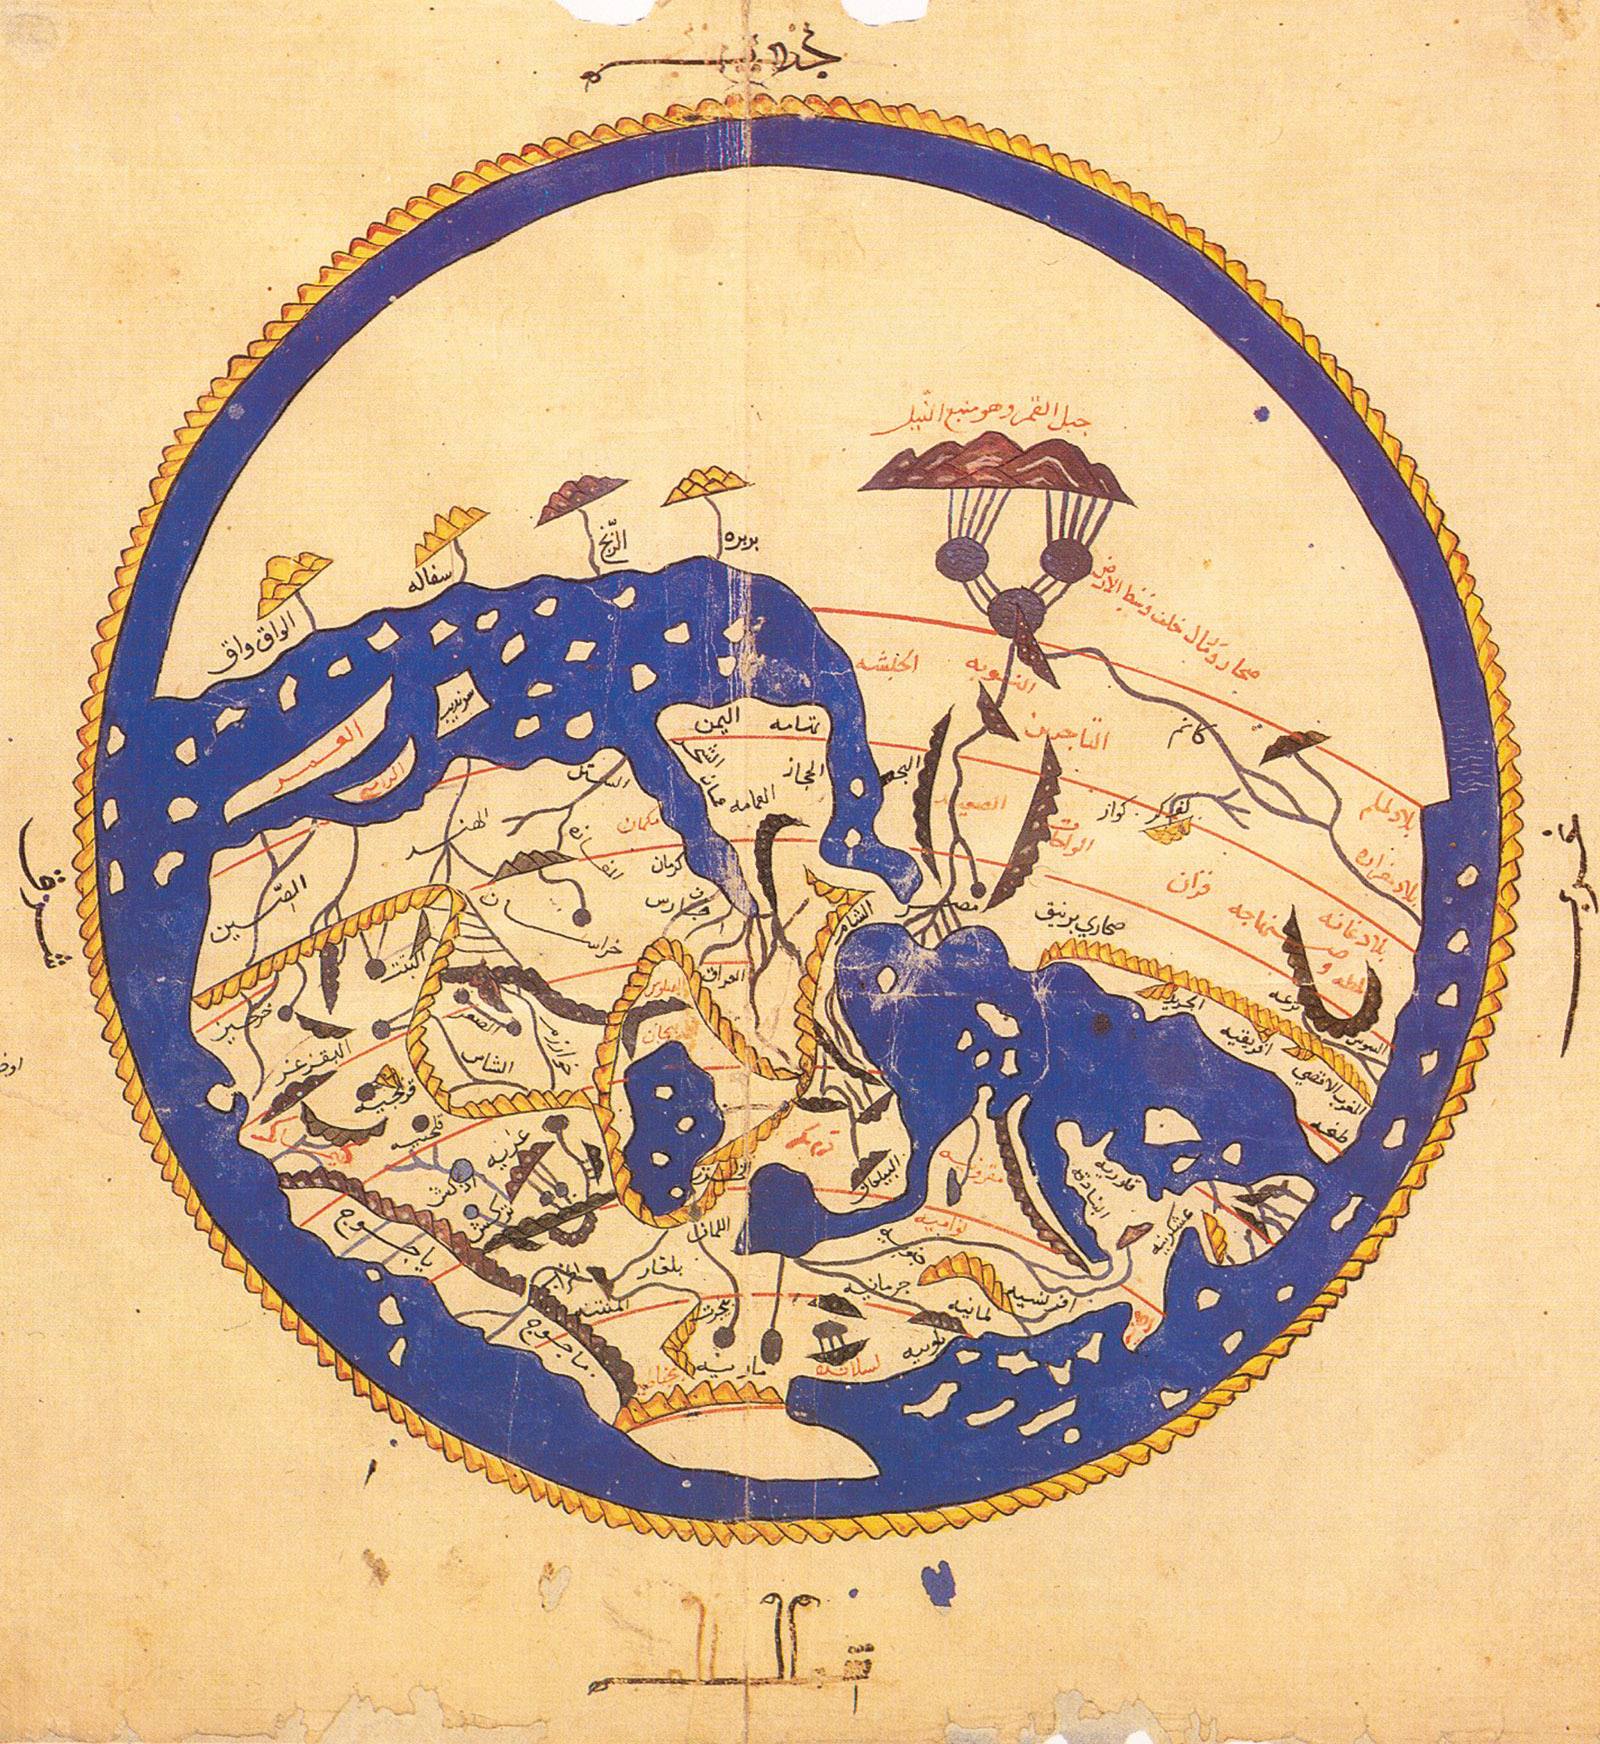 A map of the world from Entertainment for He Who Longs to Travel the World, a geographical book from 1154 by Muhammad al-Idrisi